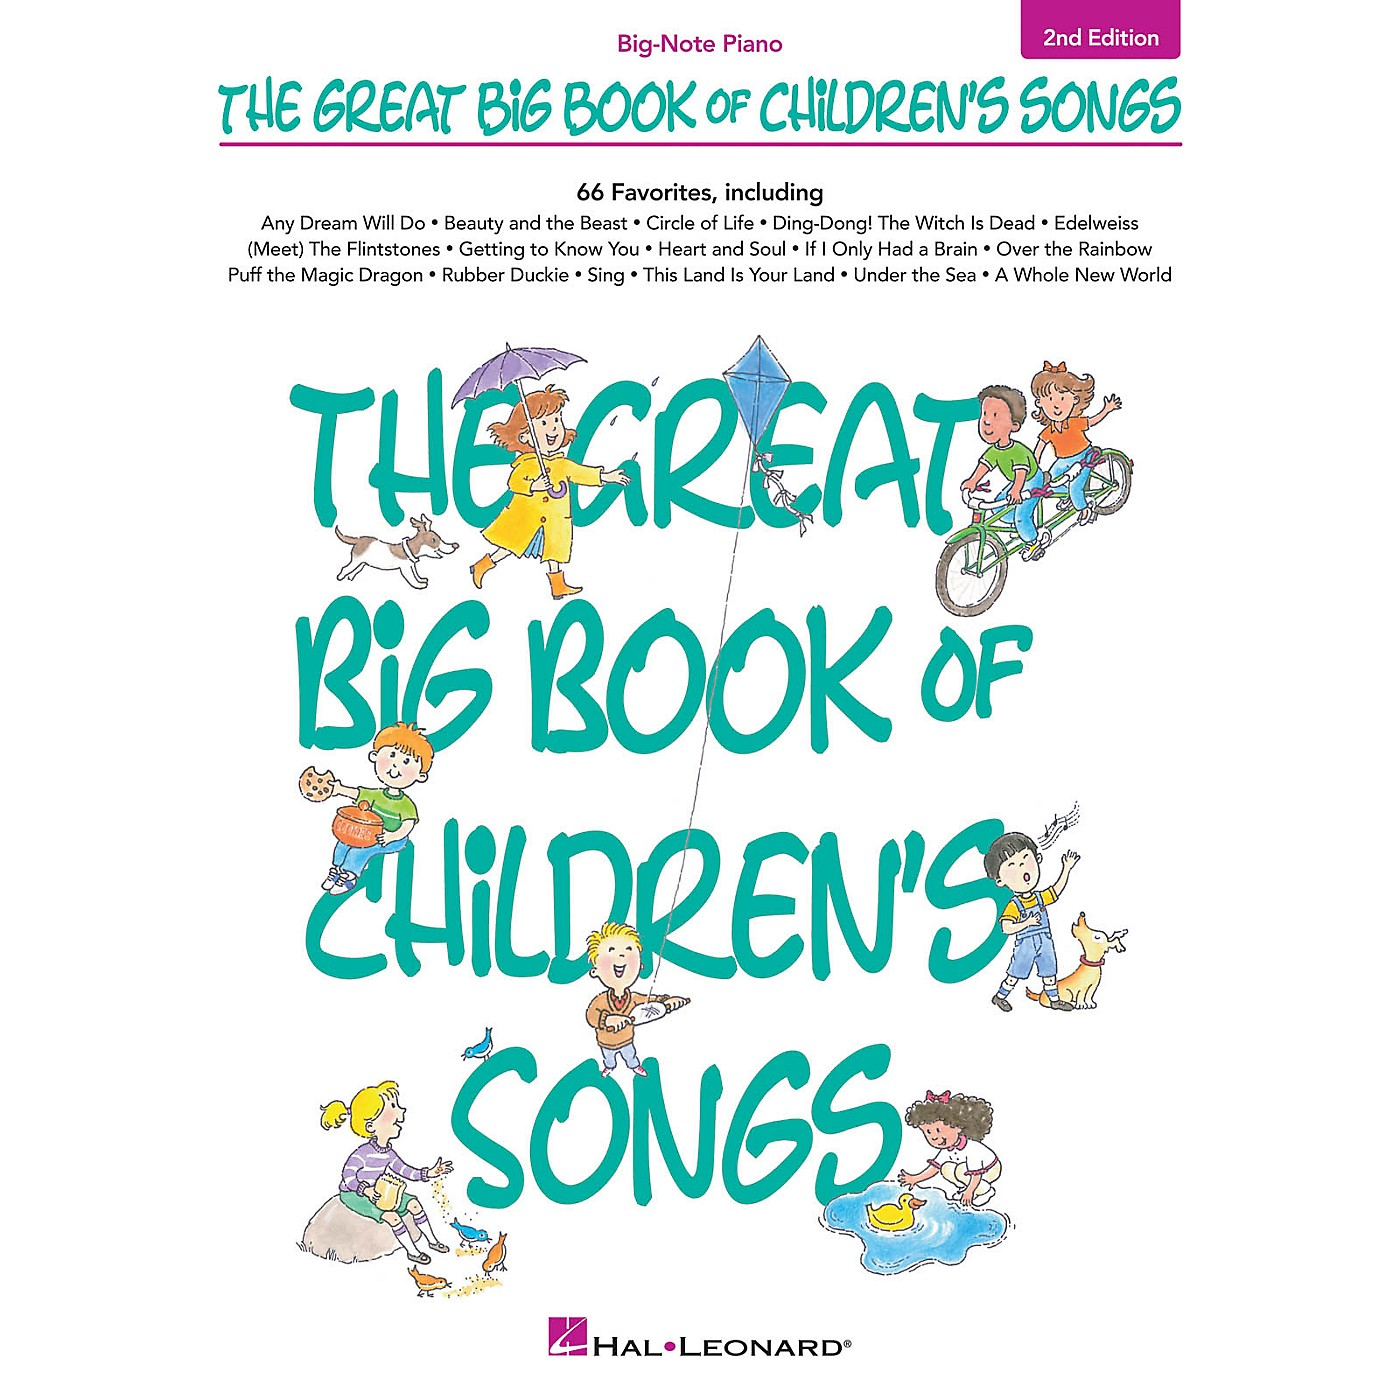 Hal Leonard The Great Big Book of Children's Songs - 2nd Edition Big Note Piano Songbook thumbnail